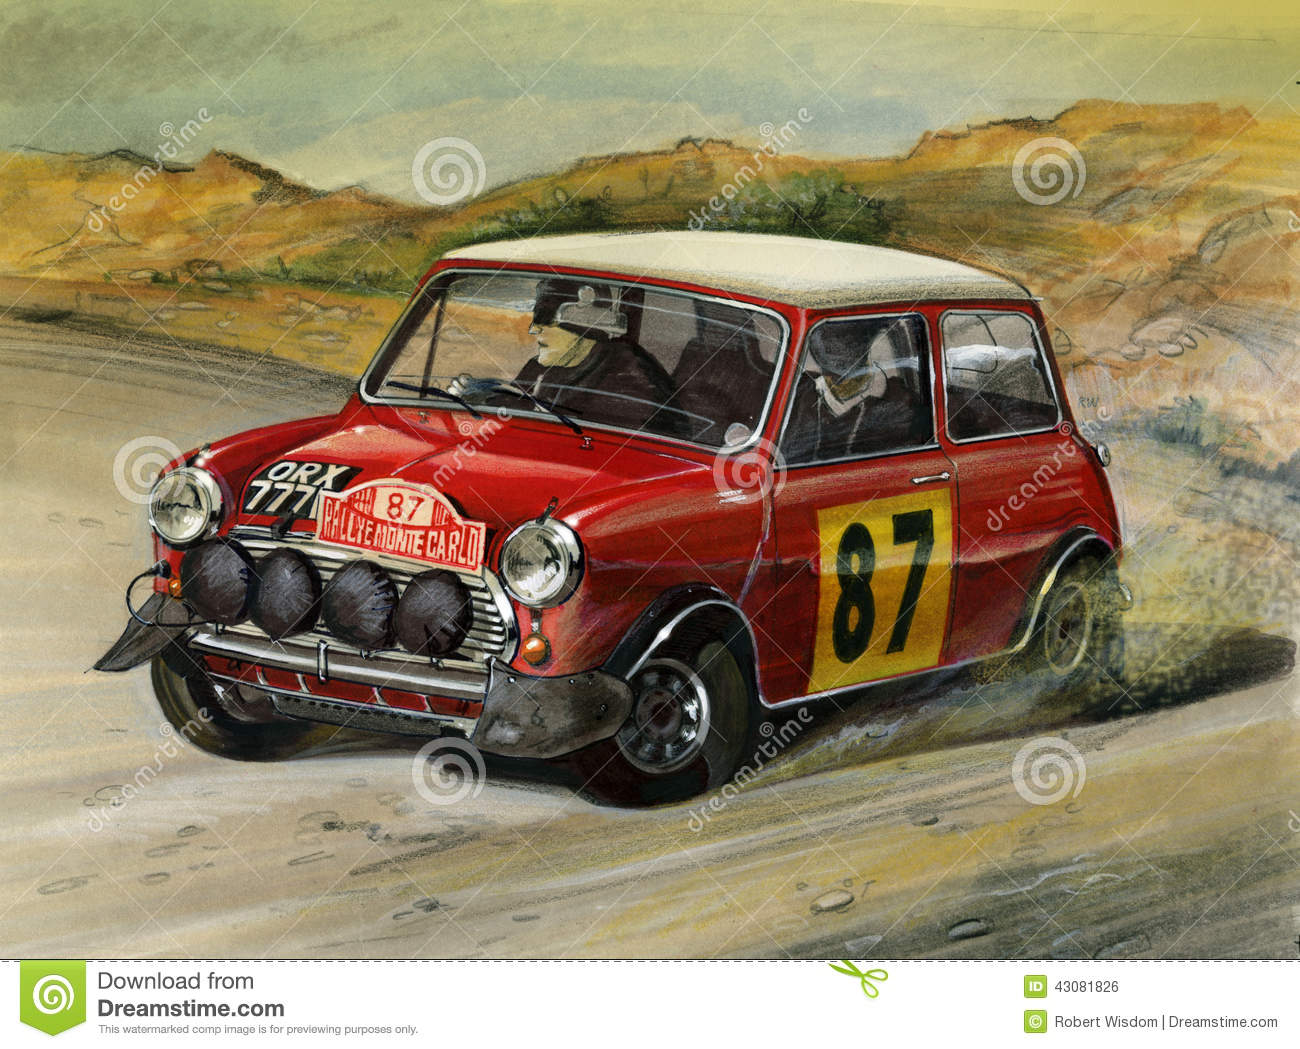 Mini Cooper S Monte Carlo Rally 1964 Editorial Photo - Image: 43081826